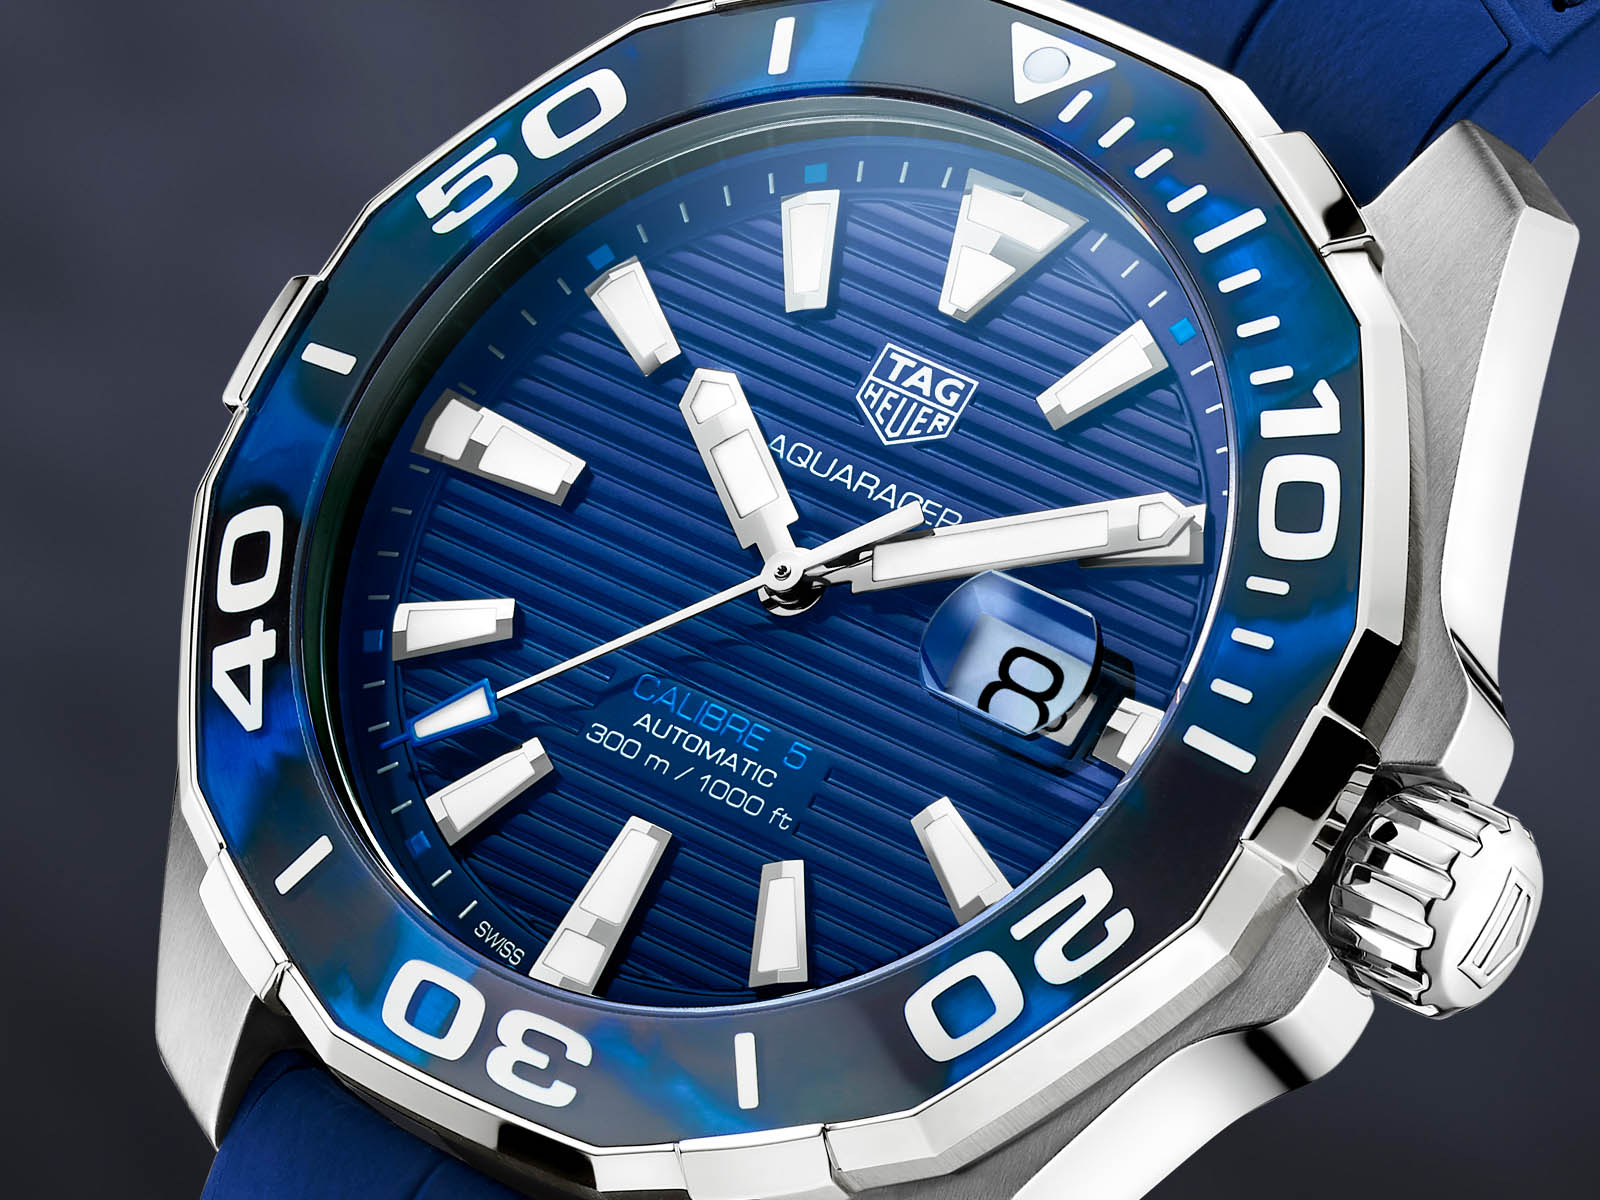 way201p-ft6178-tag-heuer-aquaracer-tortoise-shell-effect-blue-calibre-5-1.jpg